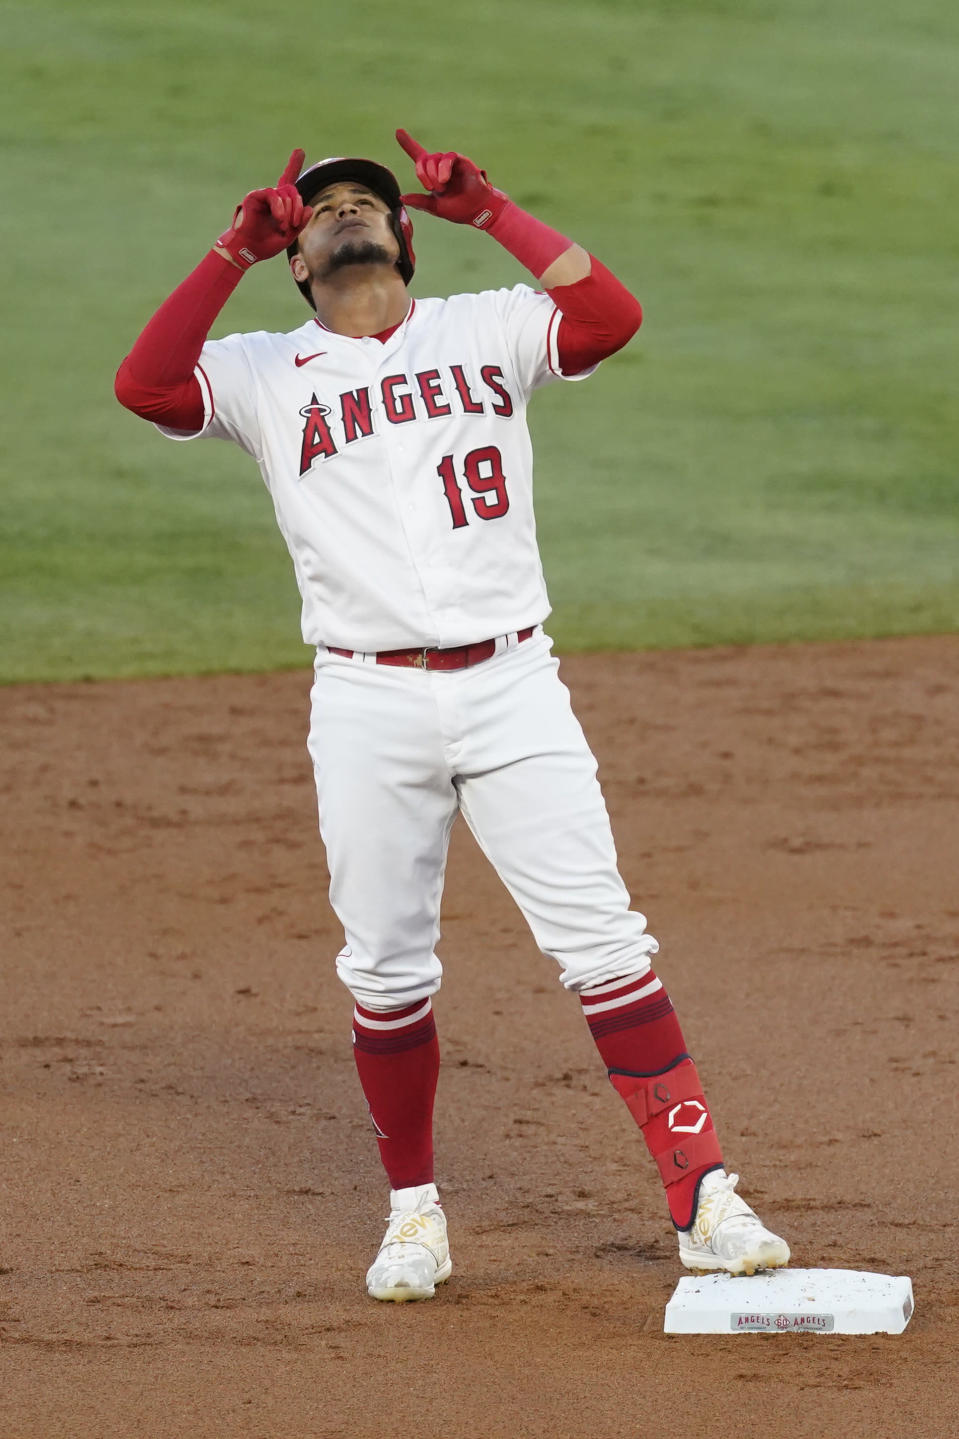 Los Angeles Angels' Juan Lagares (19) celebrates at second base after hitting a double during the second inning of a baseball game against the Seattle Mariners Saturday, June 5, 2021, in Anaheim, Calif. (AP Photo/Ashley Landis)